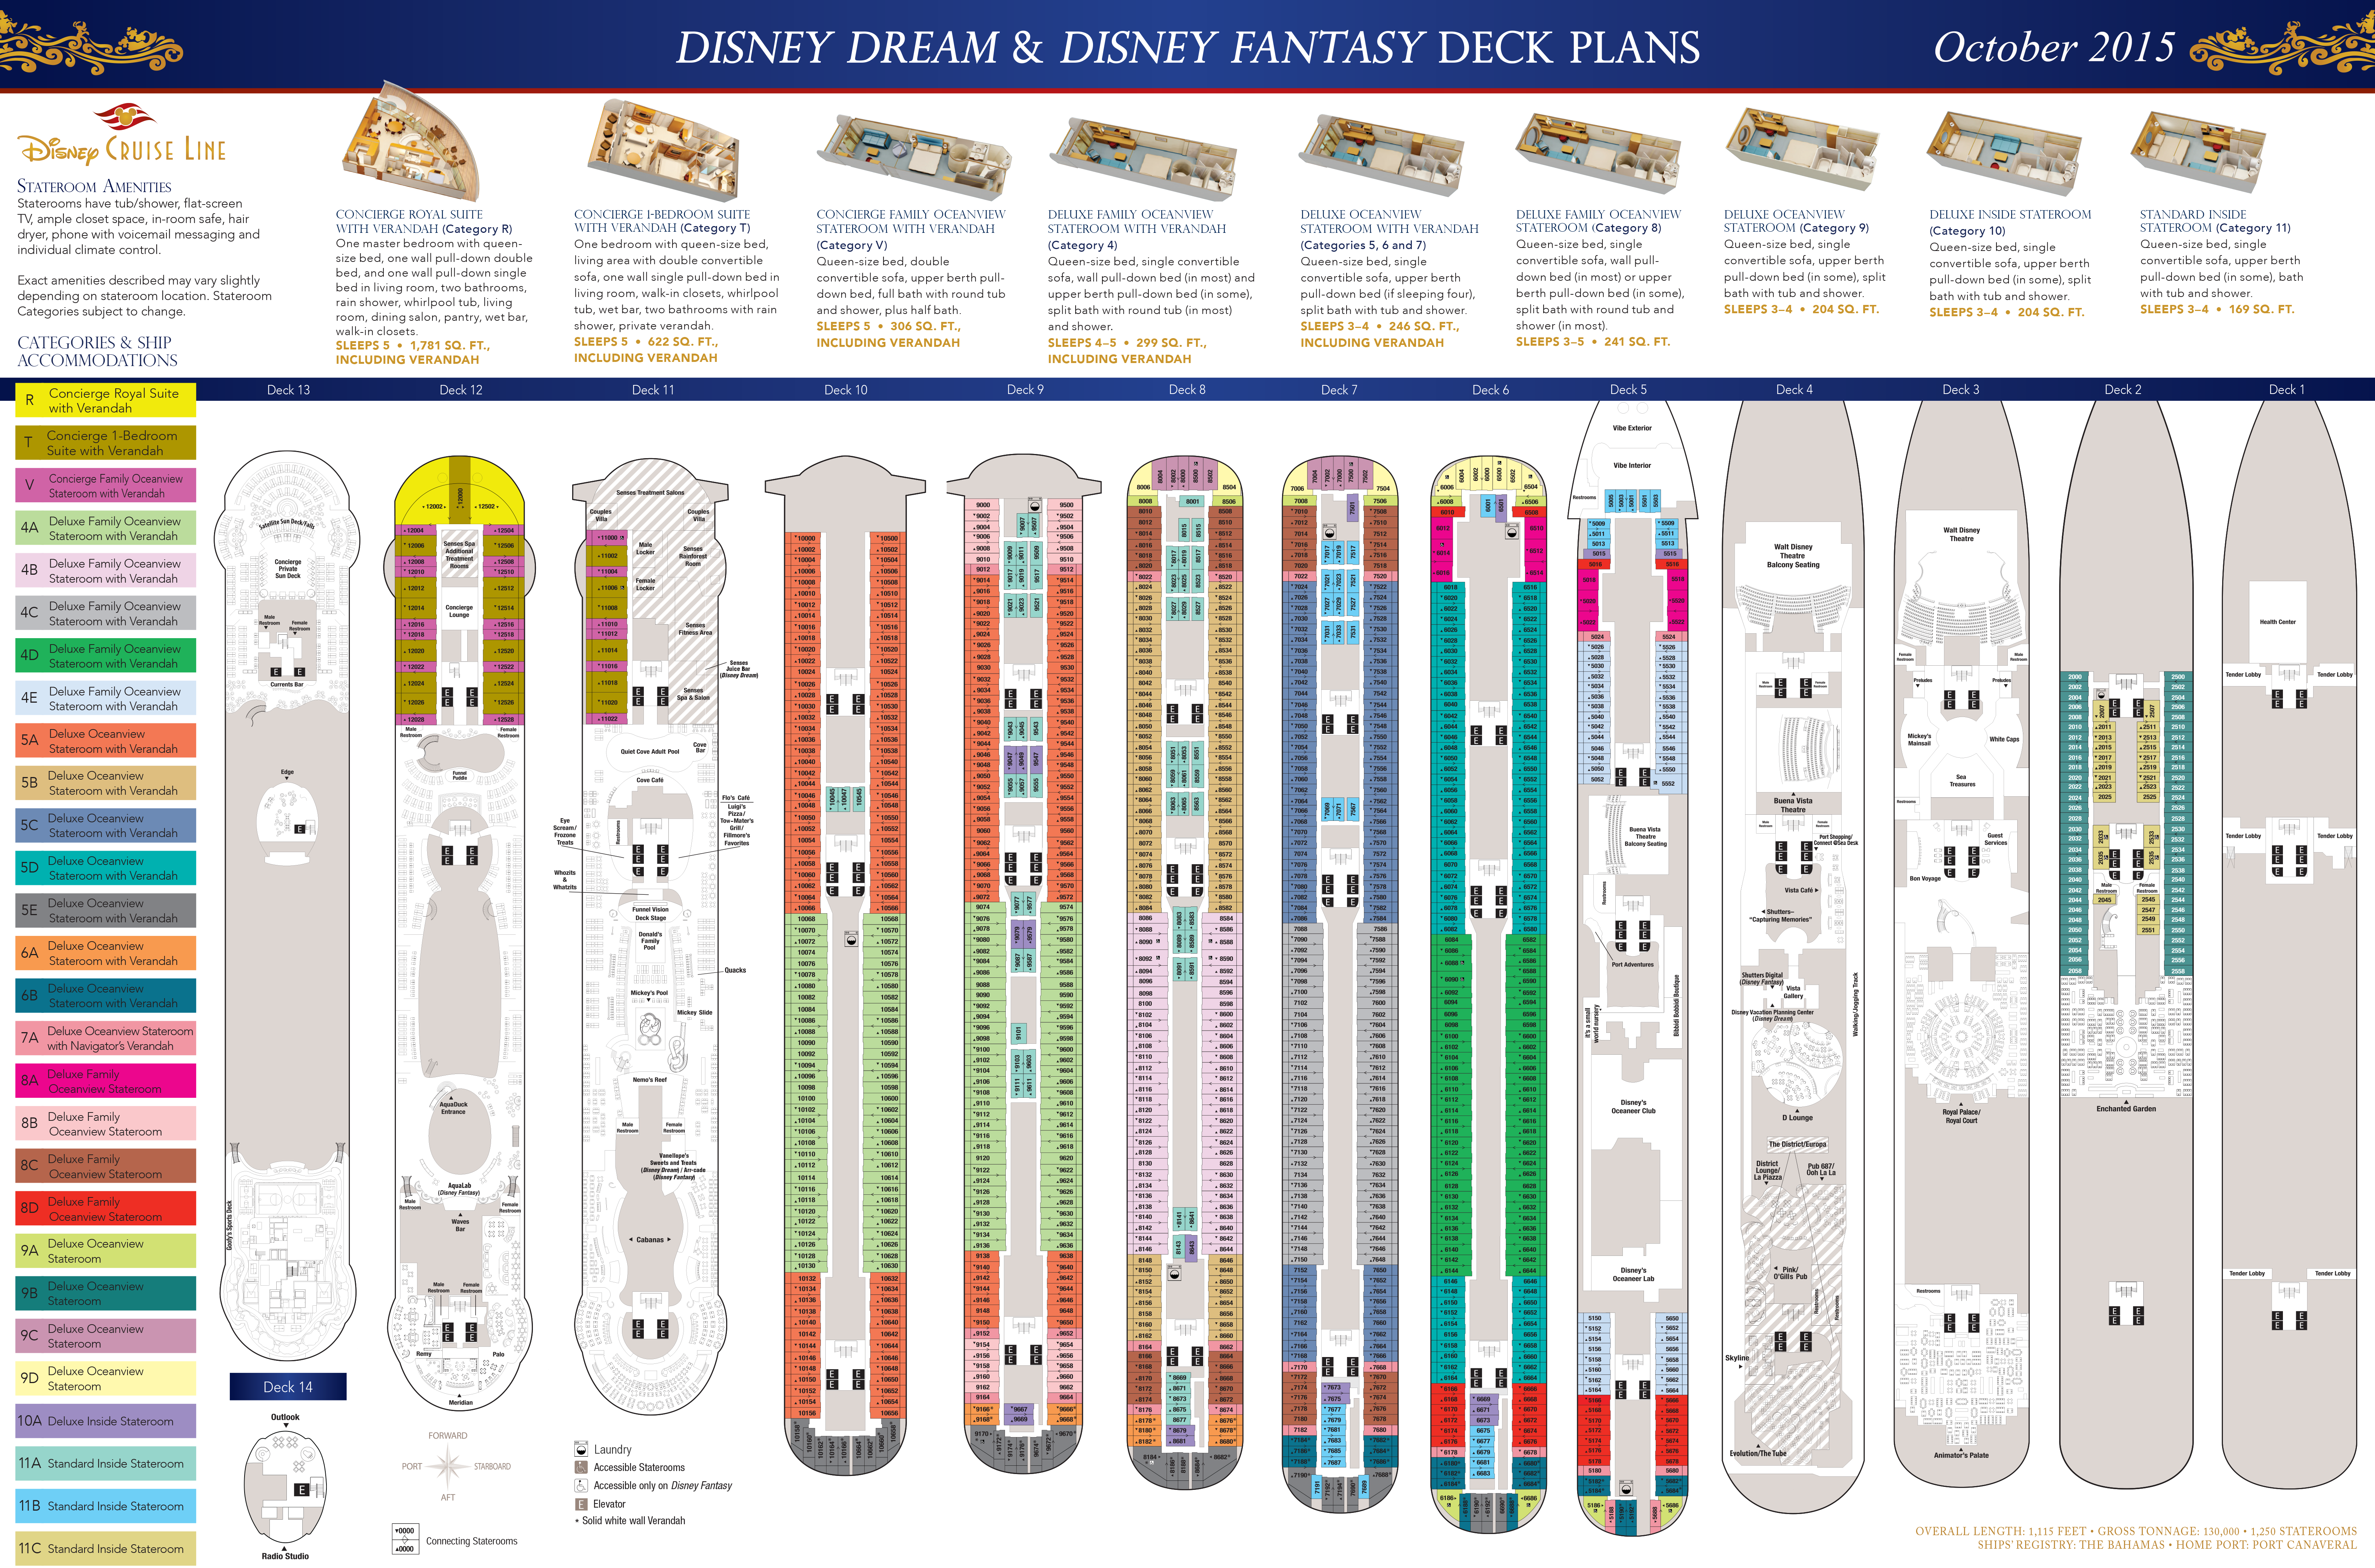 Celebrity Solstice Floor Plan Deck Plans Disney Dream Amp Disney Fantasy The Disney